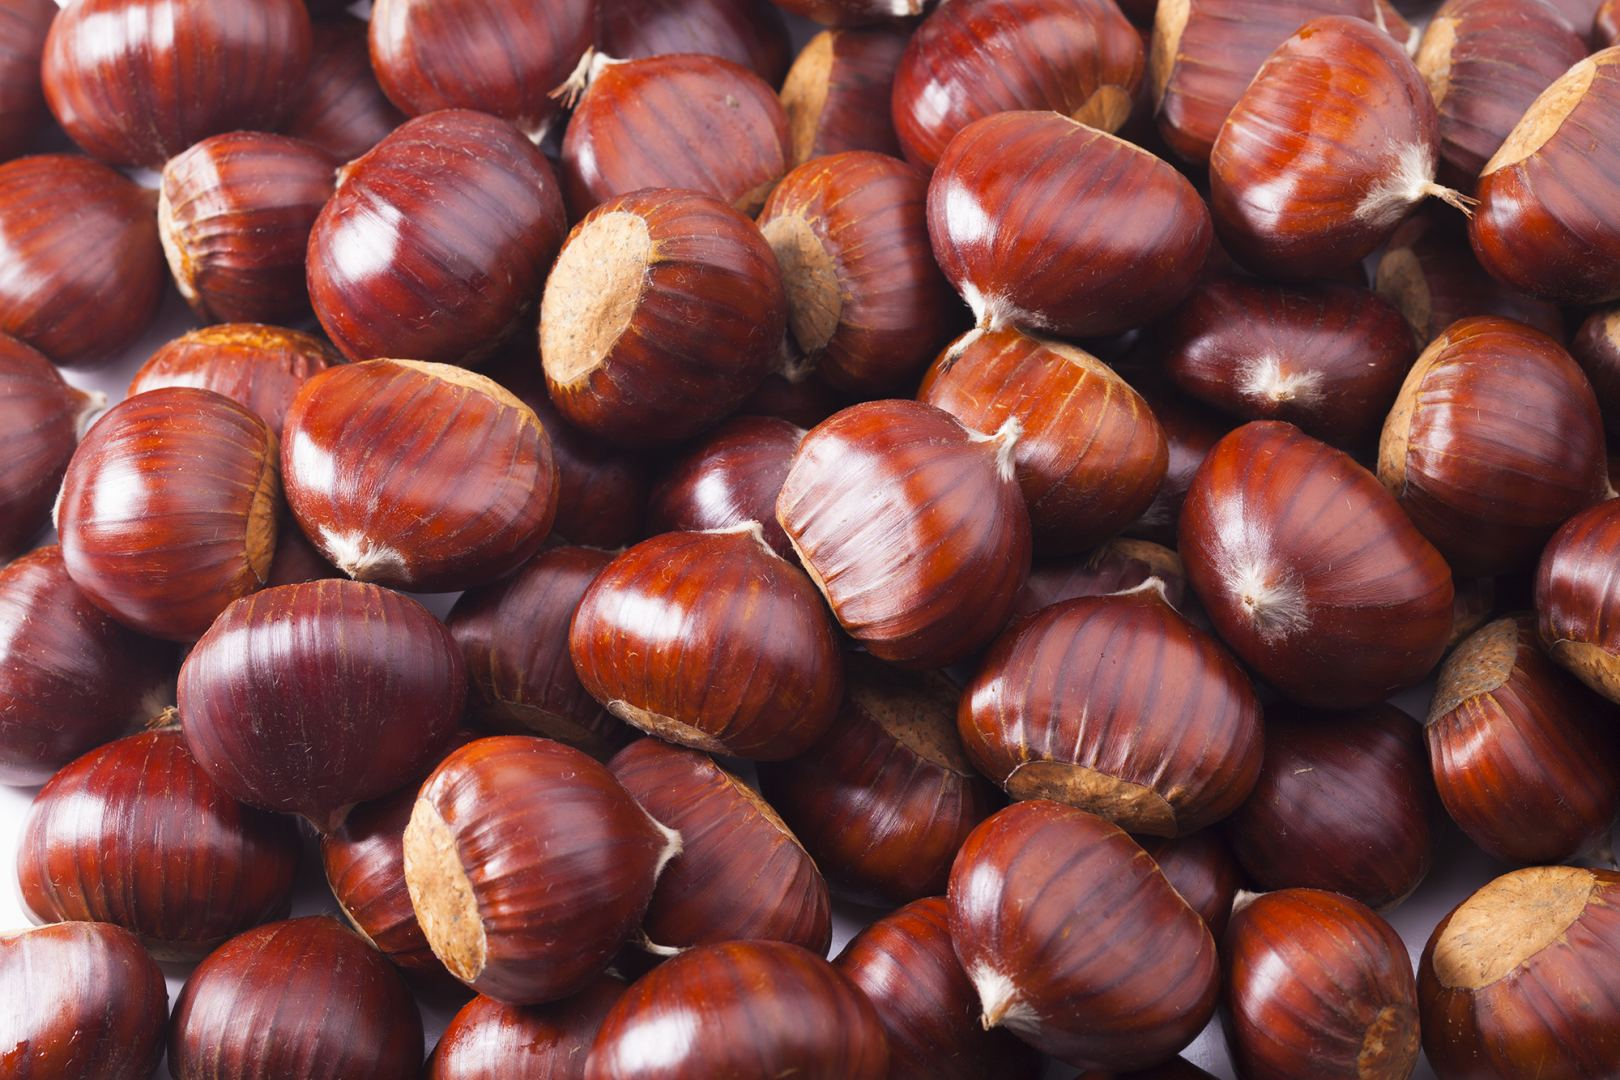 Georgian Chestnuts Export plans to open production of chestnut flour